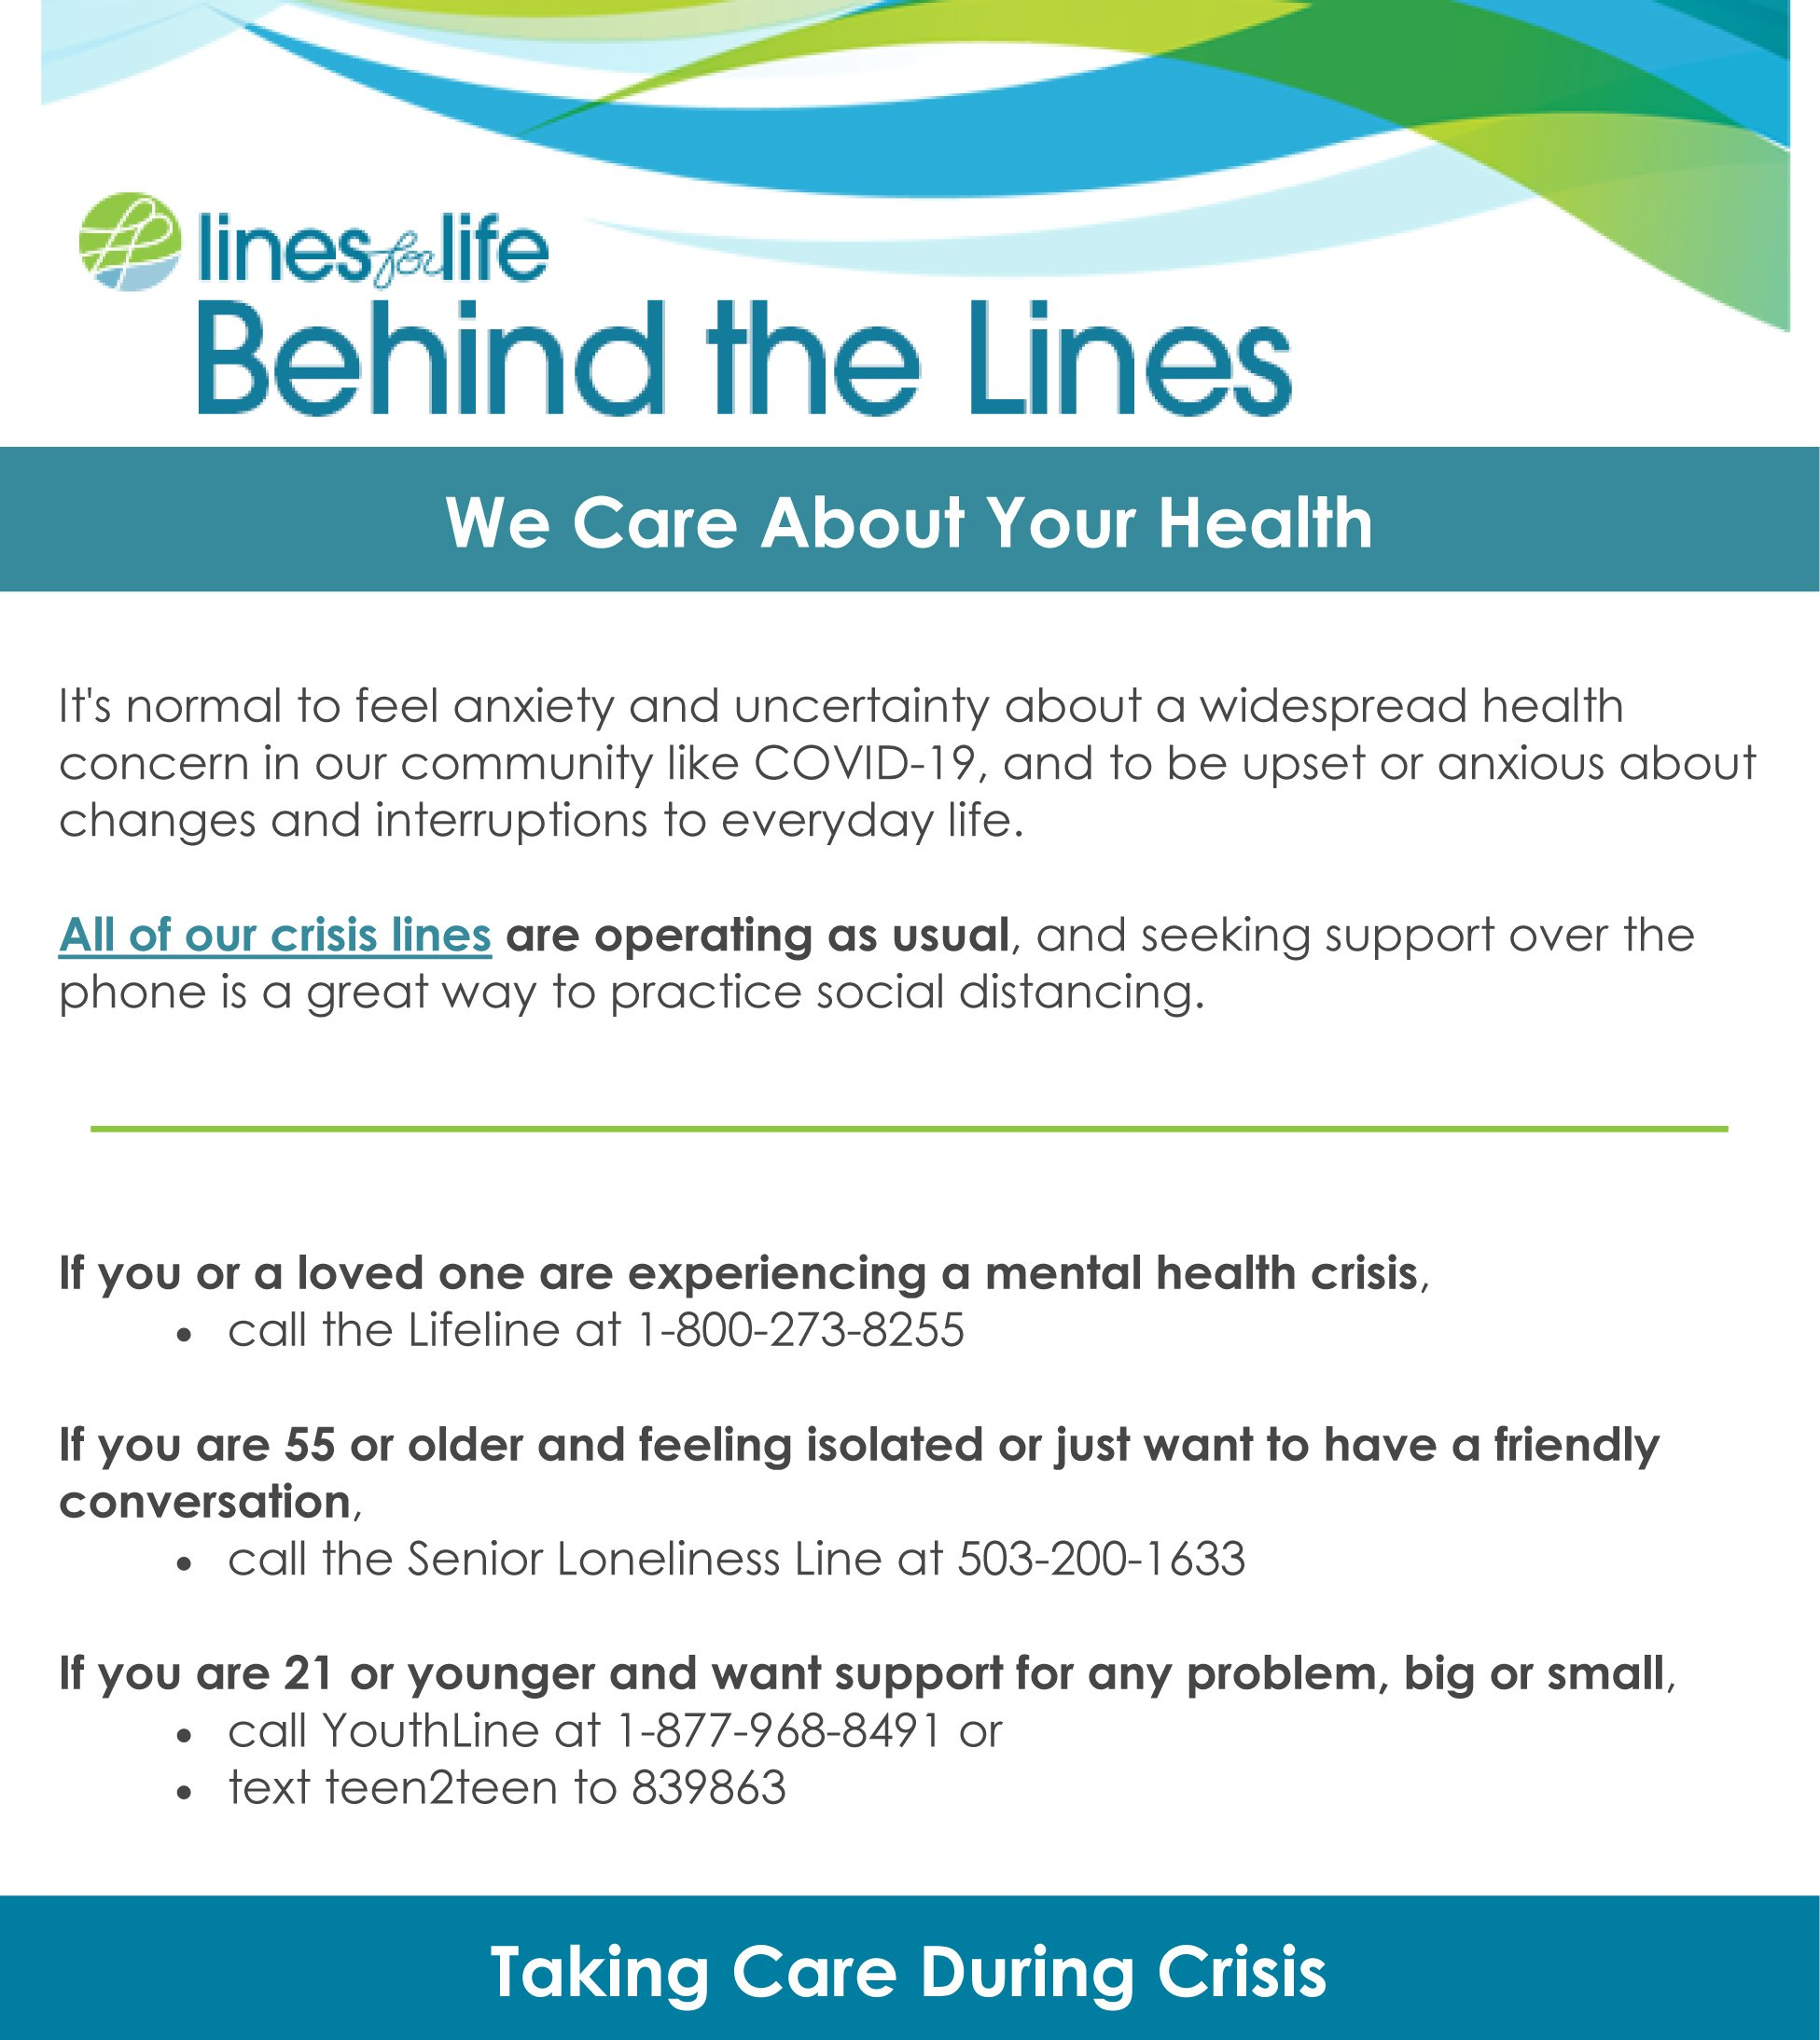 We Care About Your Health behind the lines